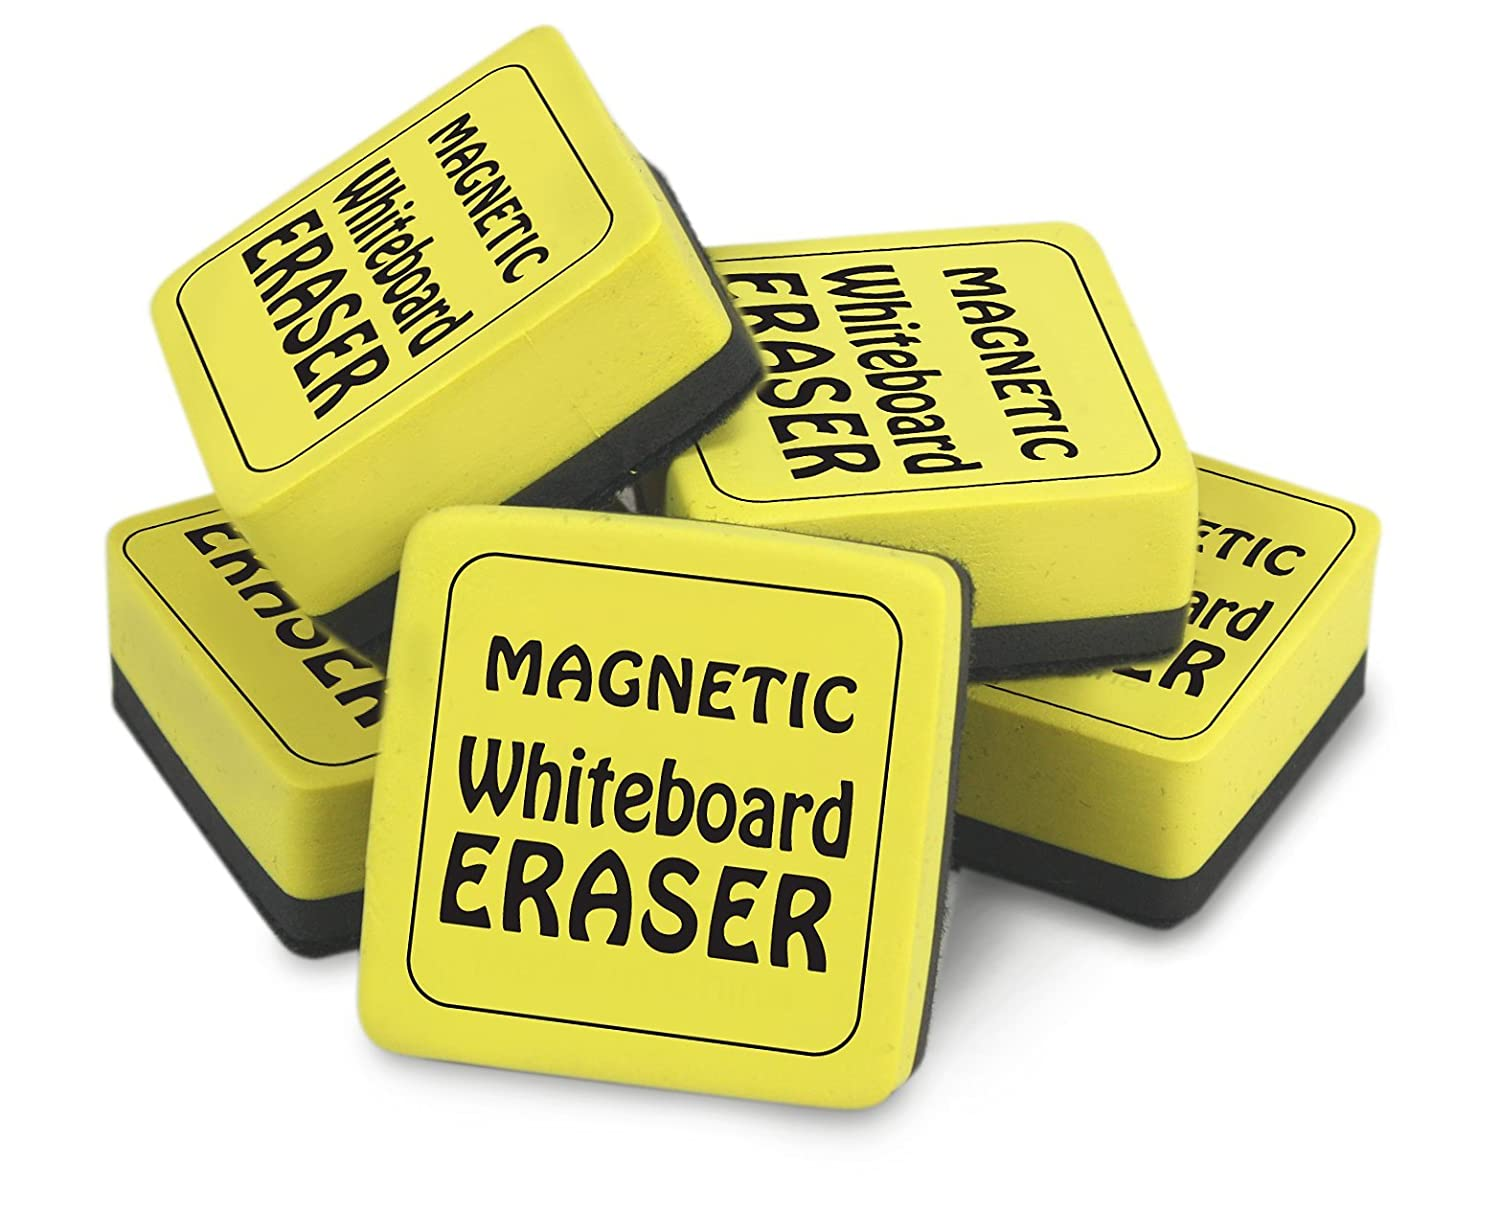 The Pencil Grip The Classics Magnetic Whiteboard Dry Erasers (12), 2 X 2-Inch, 12 Pack, Yellow/Black (TPG-355) Inc.